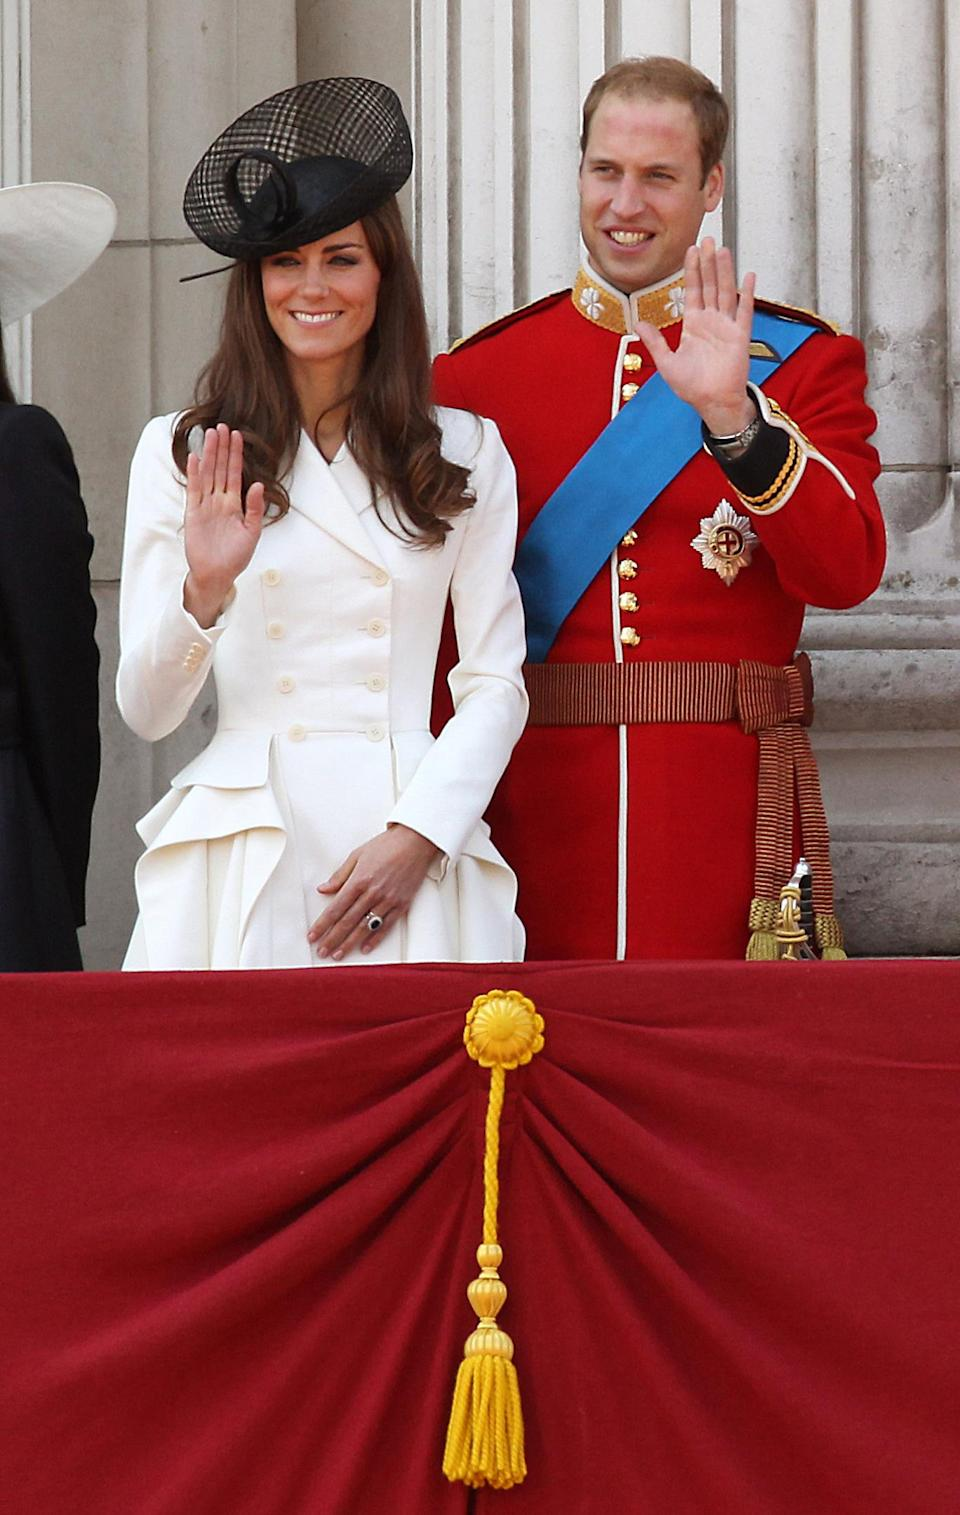 The Duke and Duchess of Cambridge attend their first Trooping the Colour as a married couple. (PA Images)